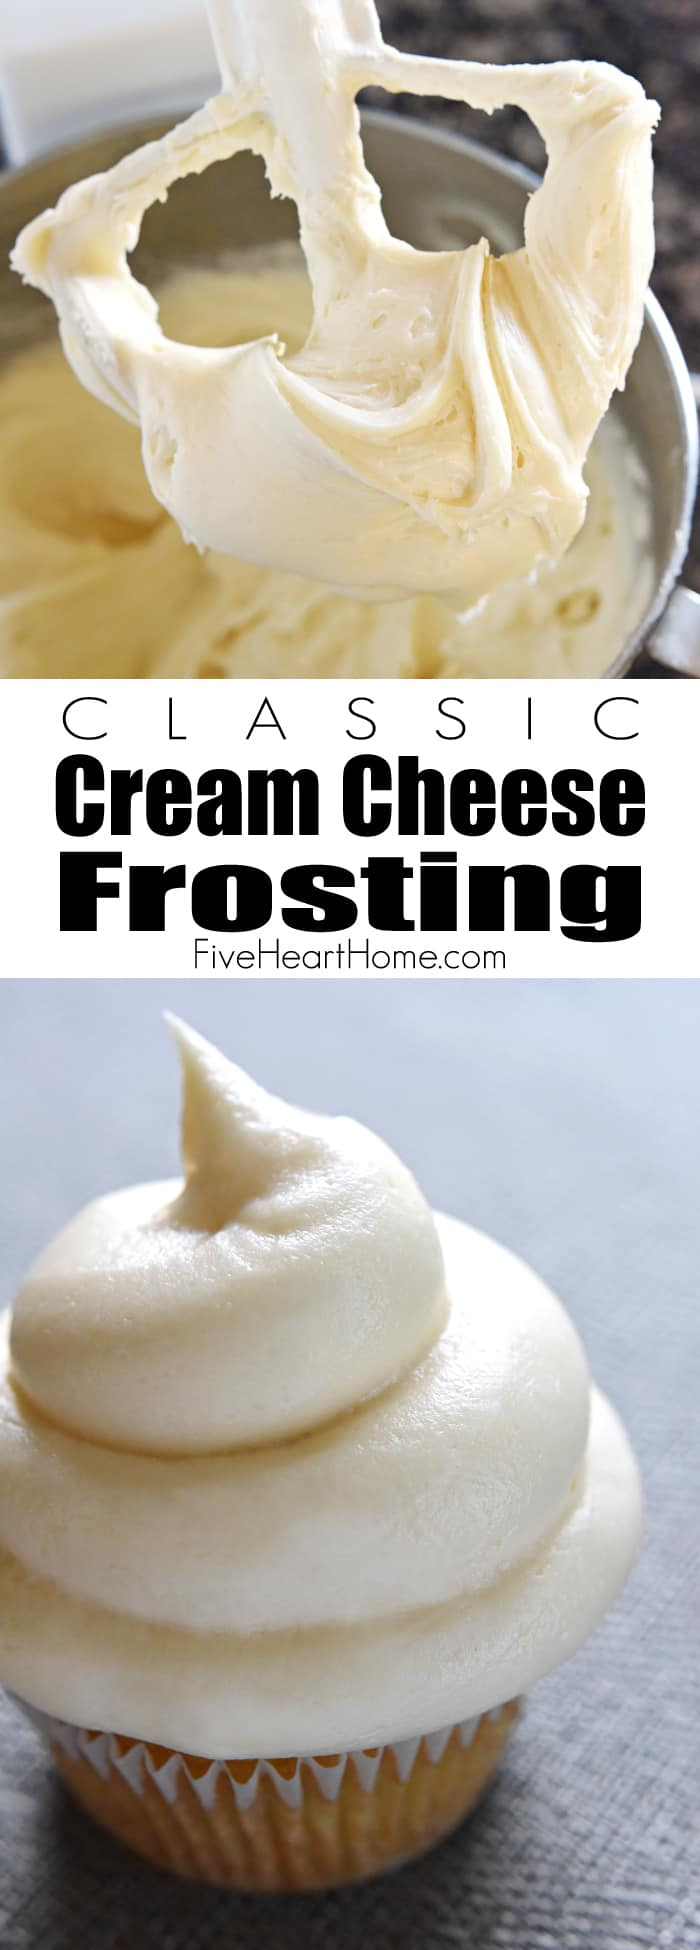 Classic Cream Cheese Frosting ~ silky and sweet with a slight tang from the cream cheese, this effortless frosting quickly comes together with just four ingredients and complements a variety of cakes and cupcakes! | FiveHeartHome.com